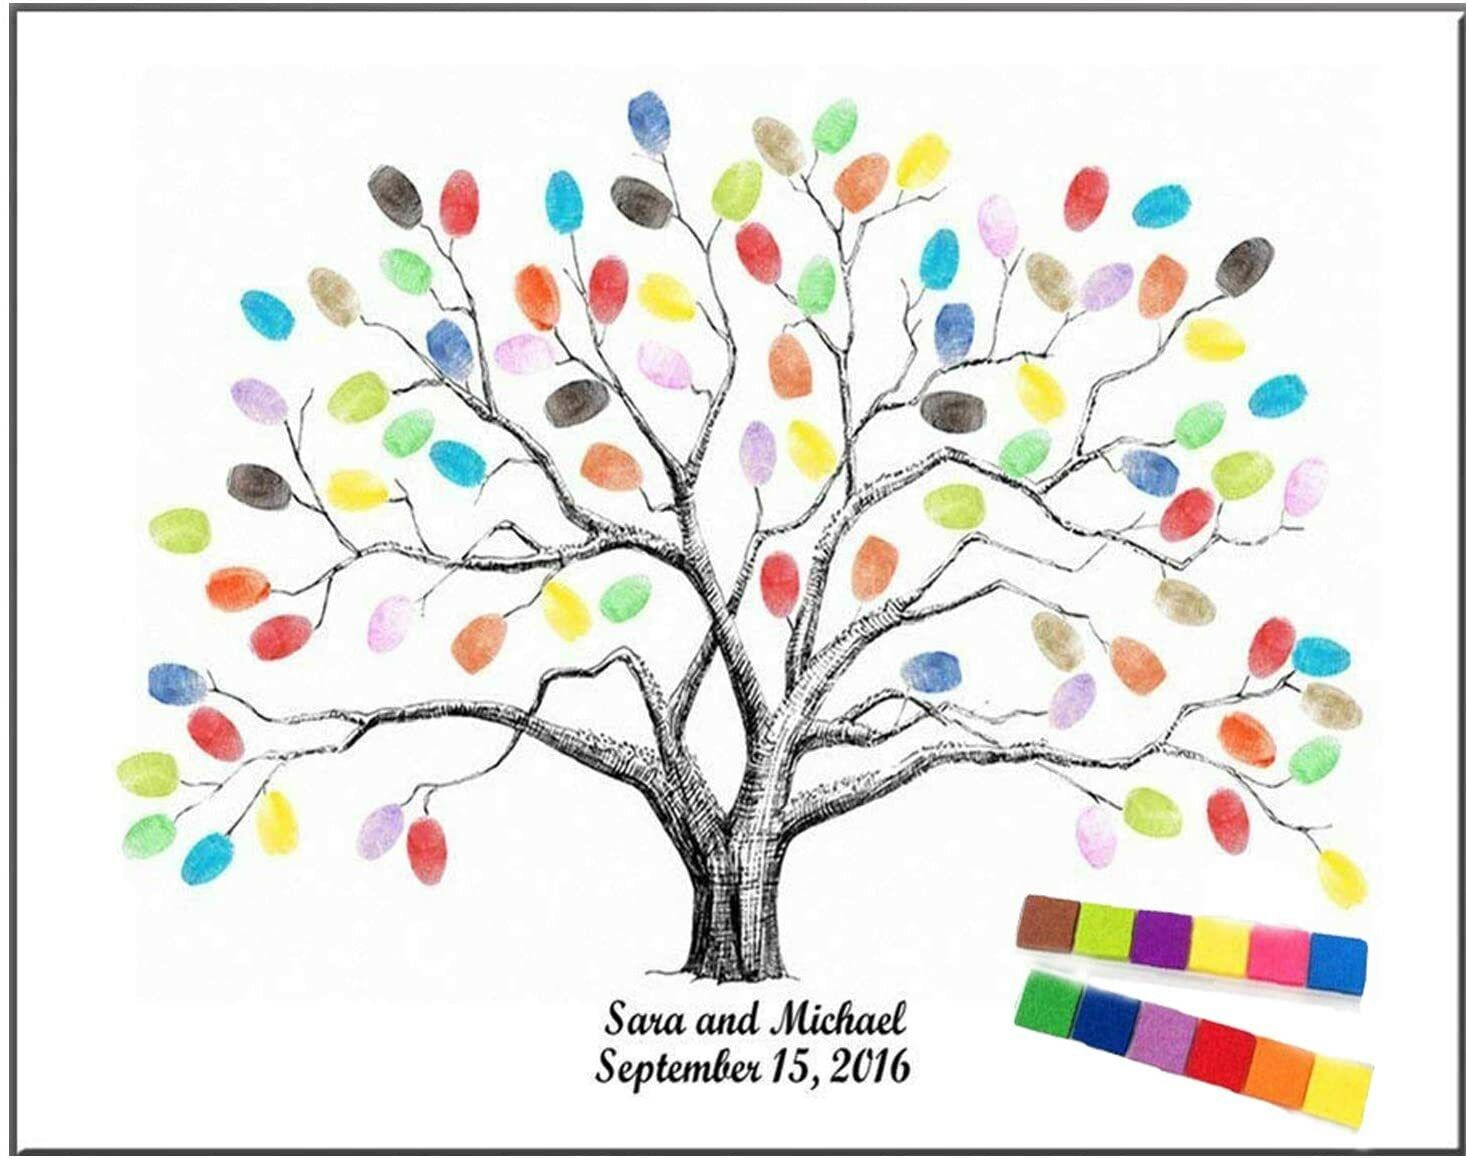 Large 23.6″ Canvas Fingerprint Tree Painting Wedding Party Guest Book w/ Ink Pad Guest Books & Pens